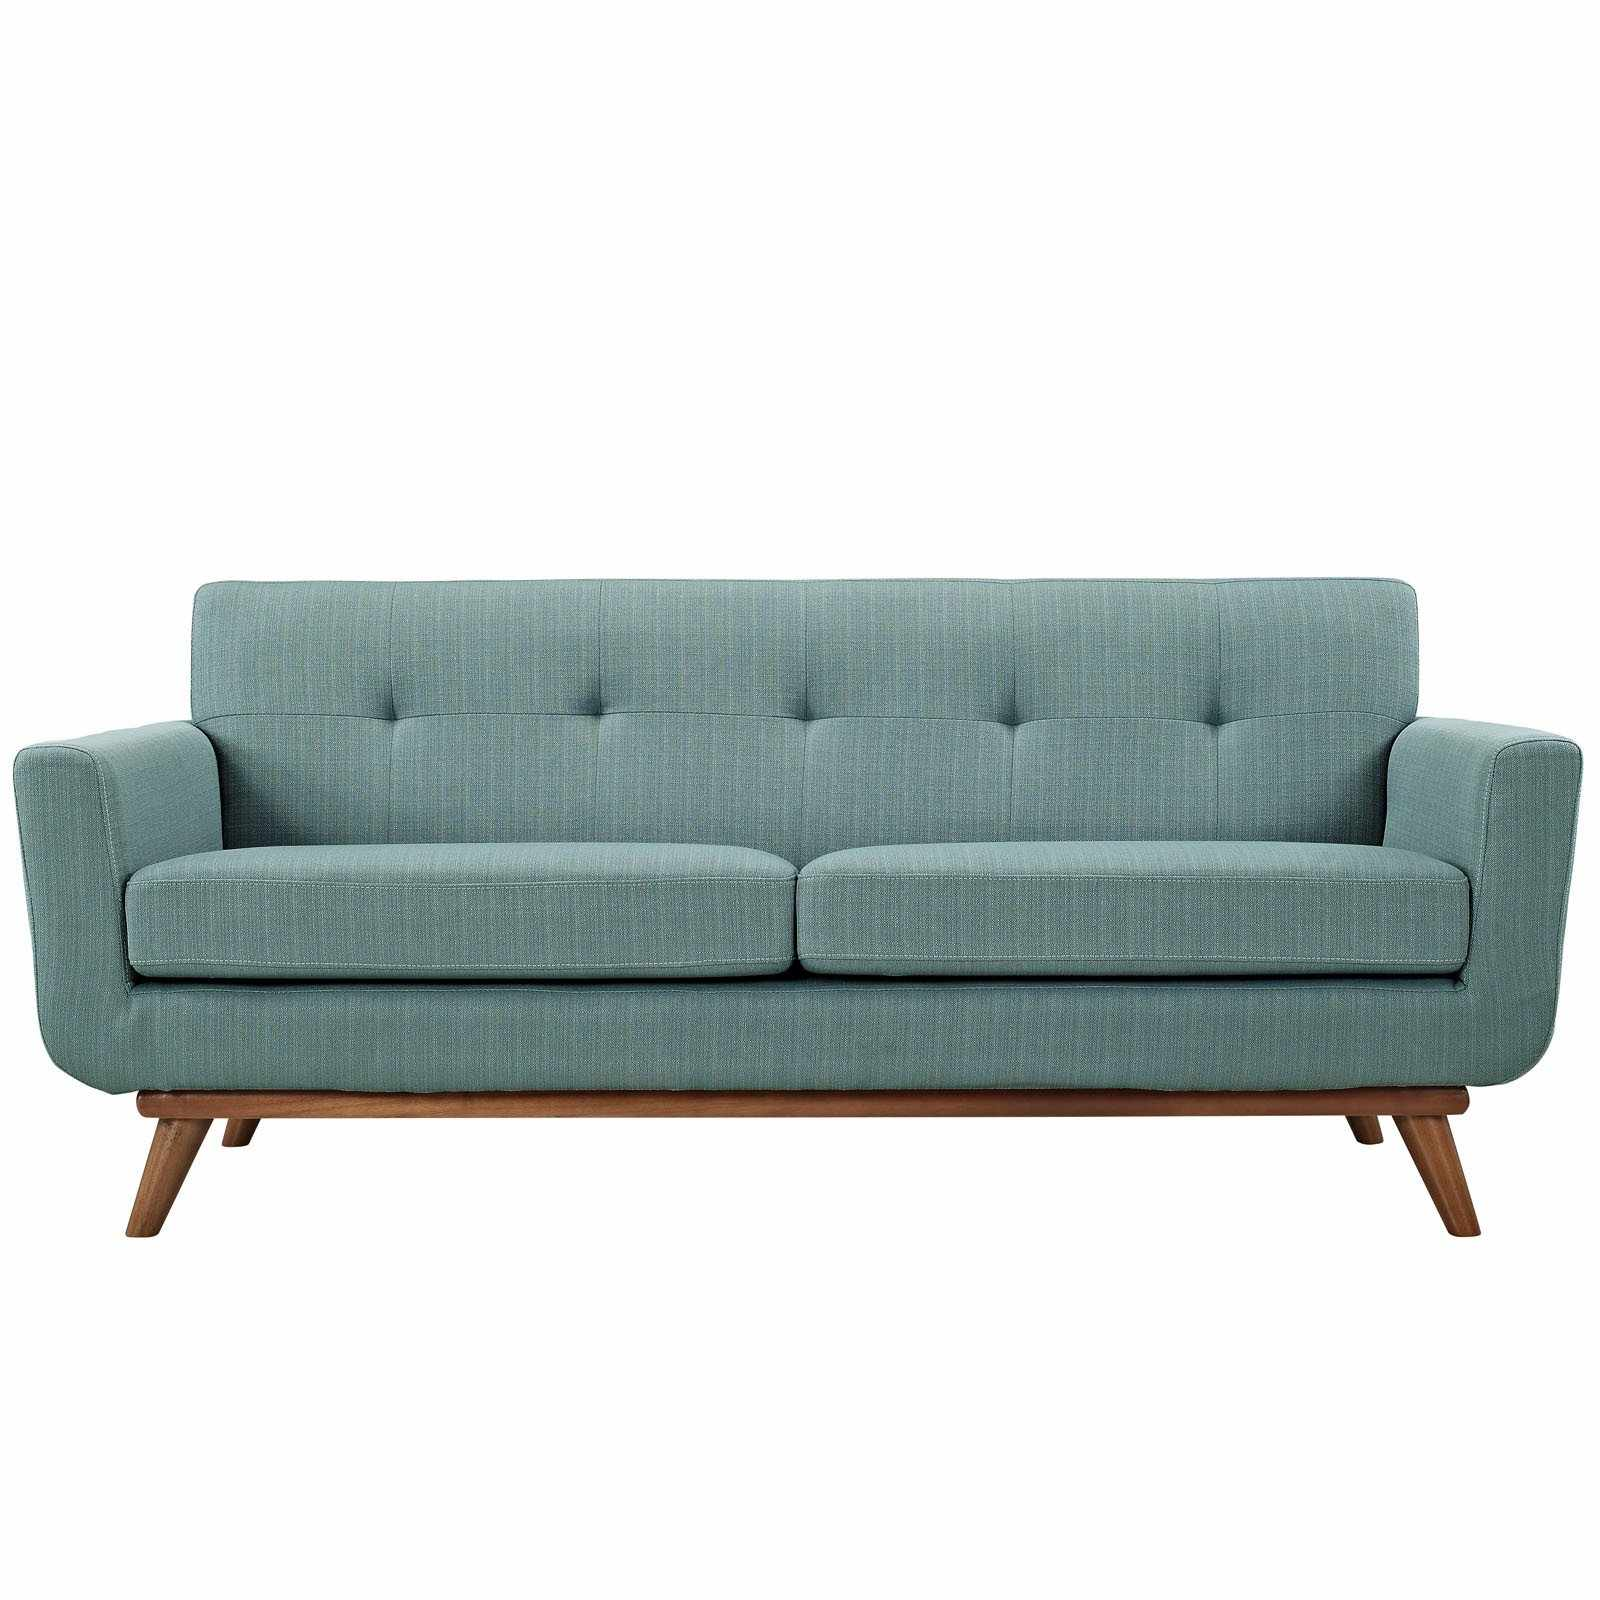 Superbe Queen Mary Loveseat Loveseats Free Shipping